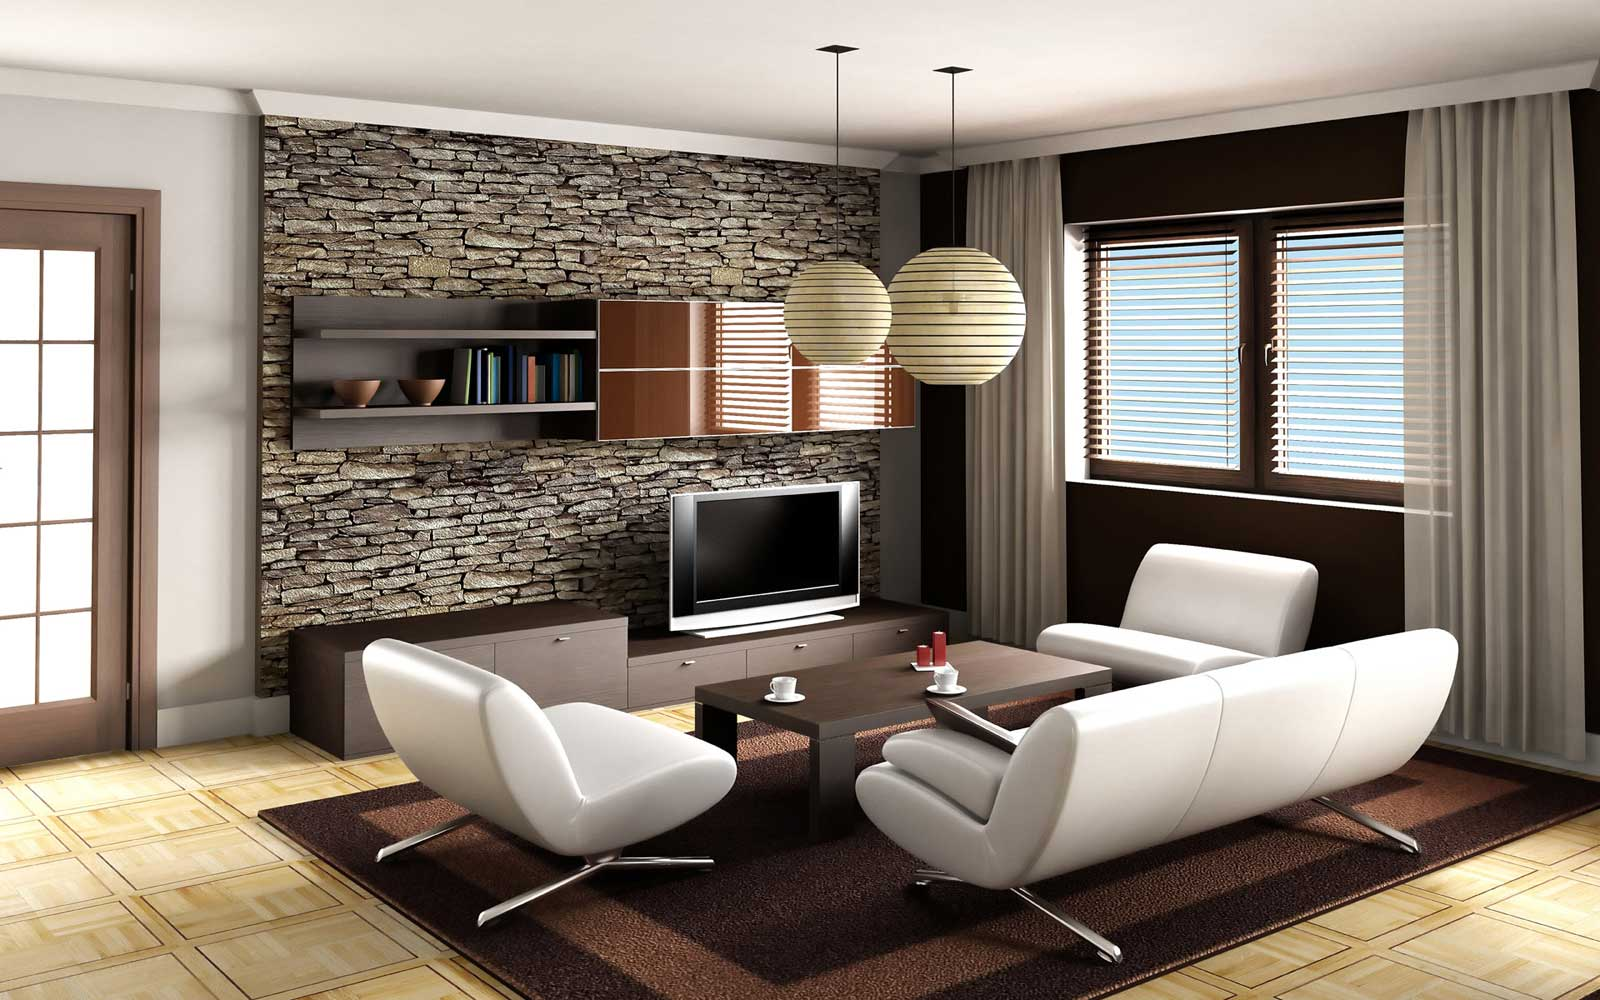 Pictures of Living Room Decor Ideas with Modern Design using White Sofa and Stone Wall modern home decor ideas living rooms